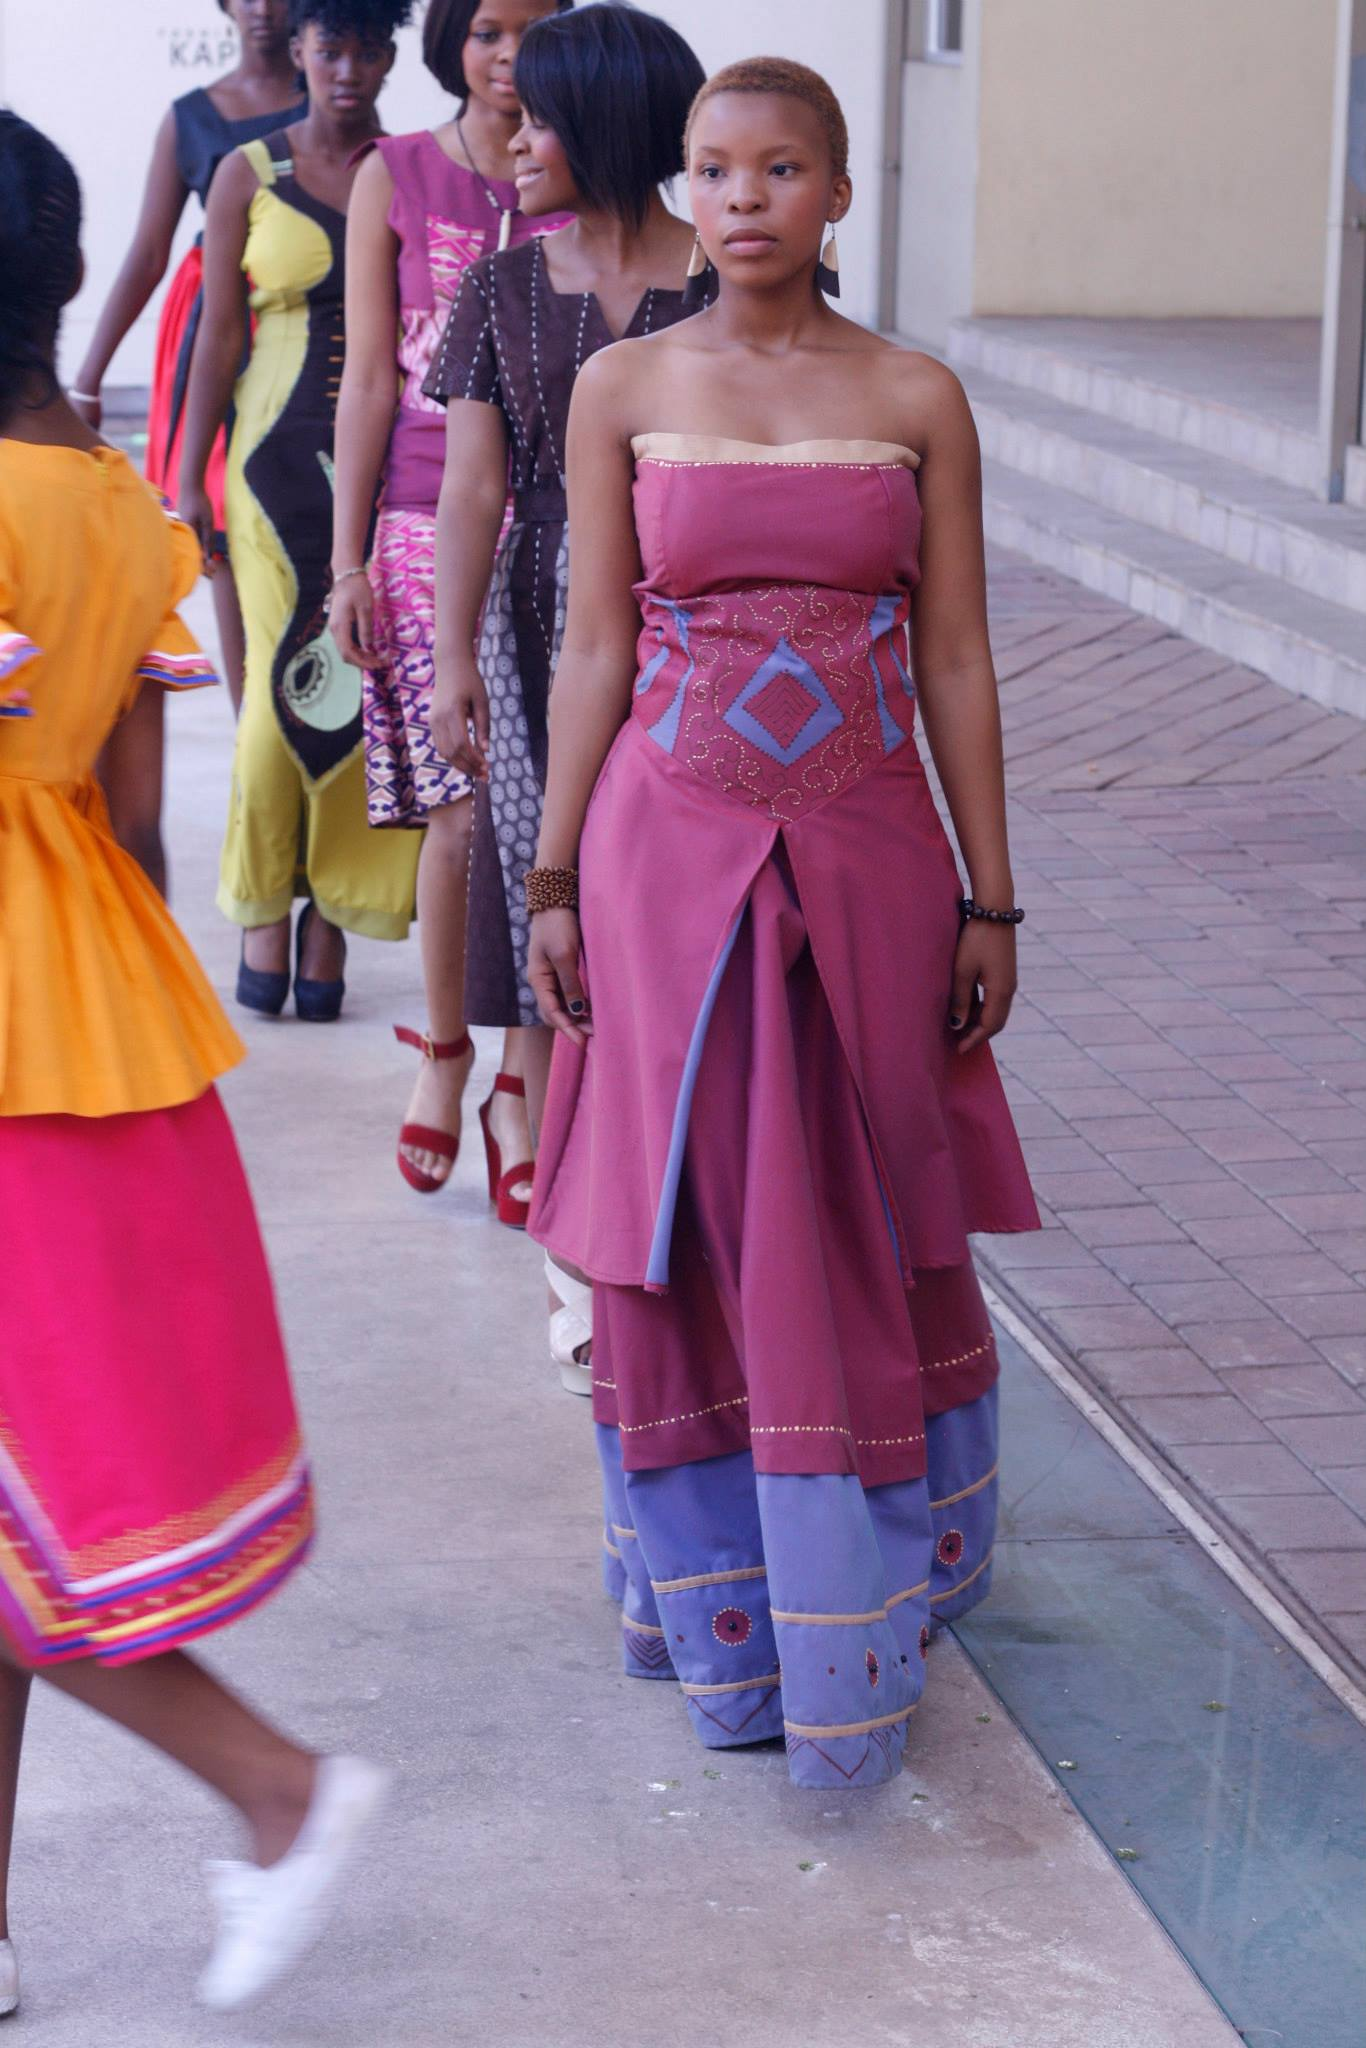 Tswana traditional dress designs 2017 styles 7 - Chisomo Designs